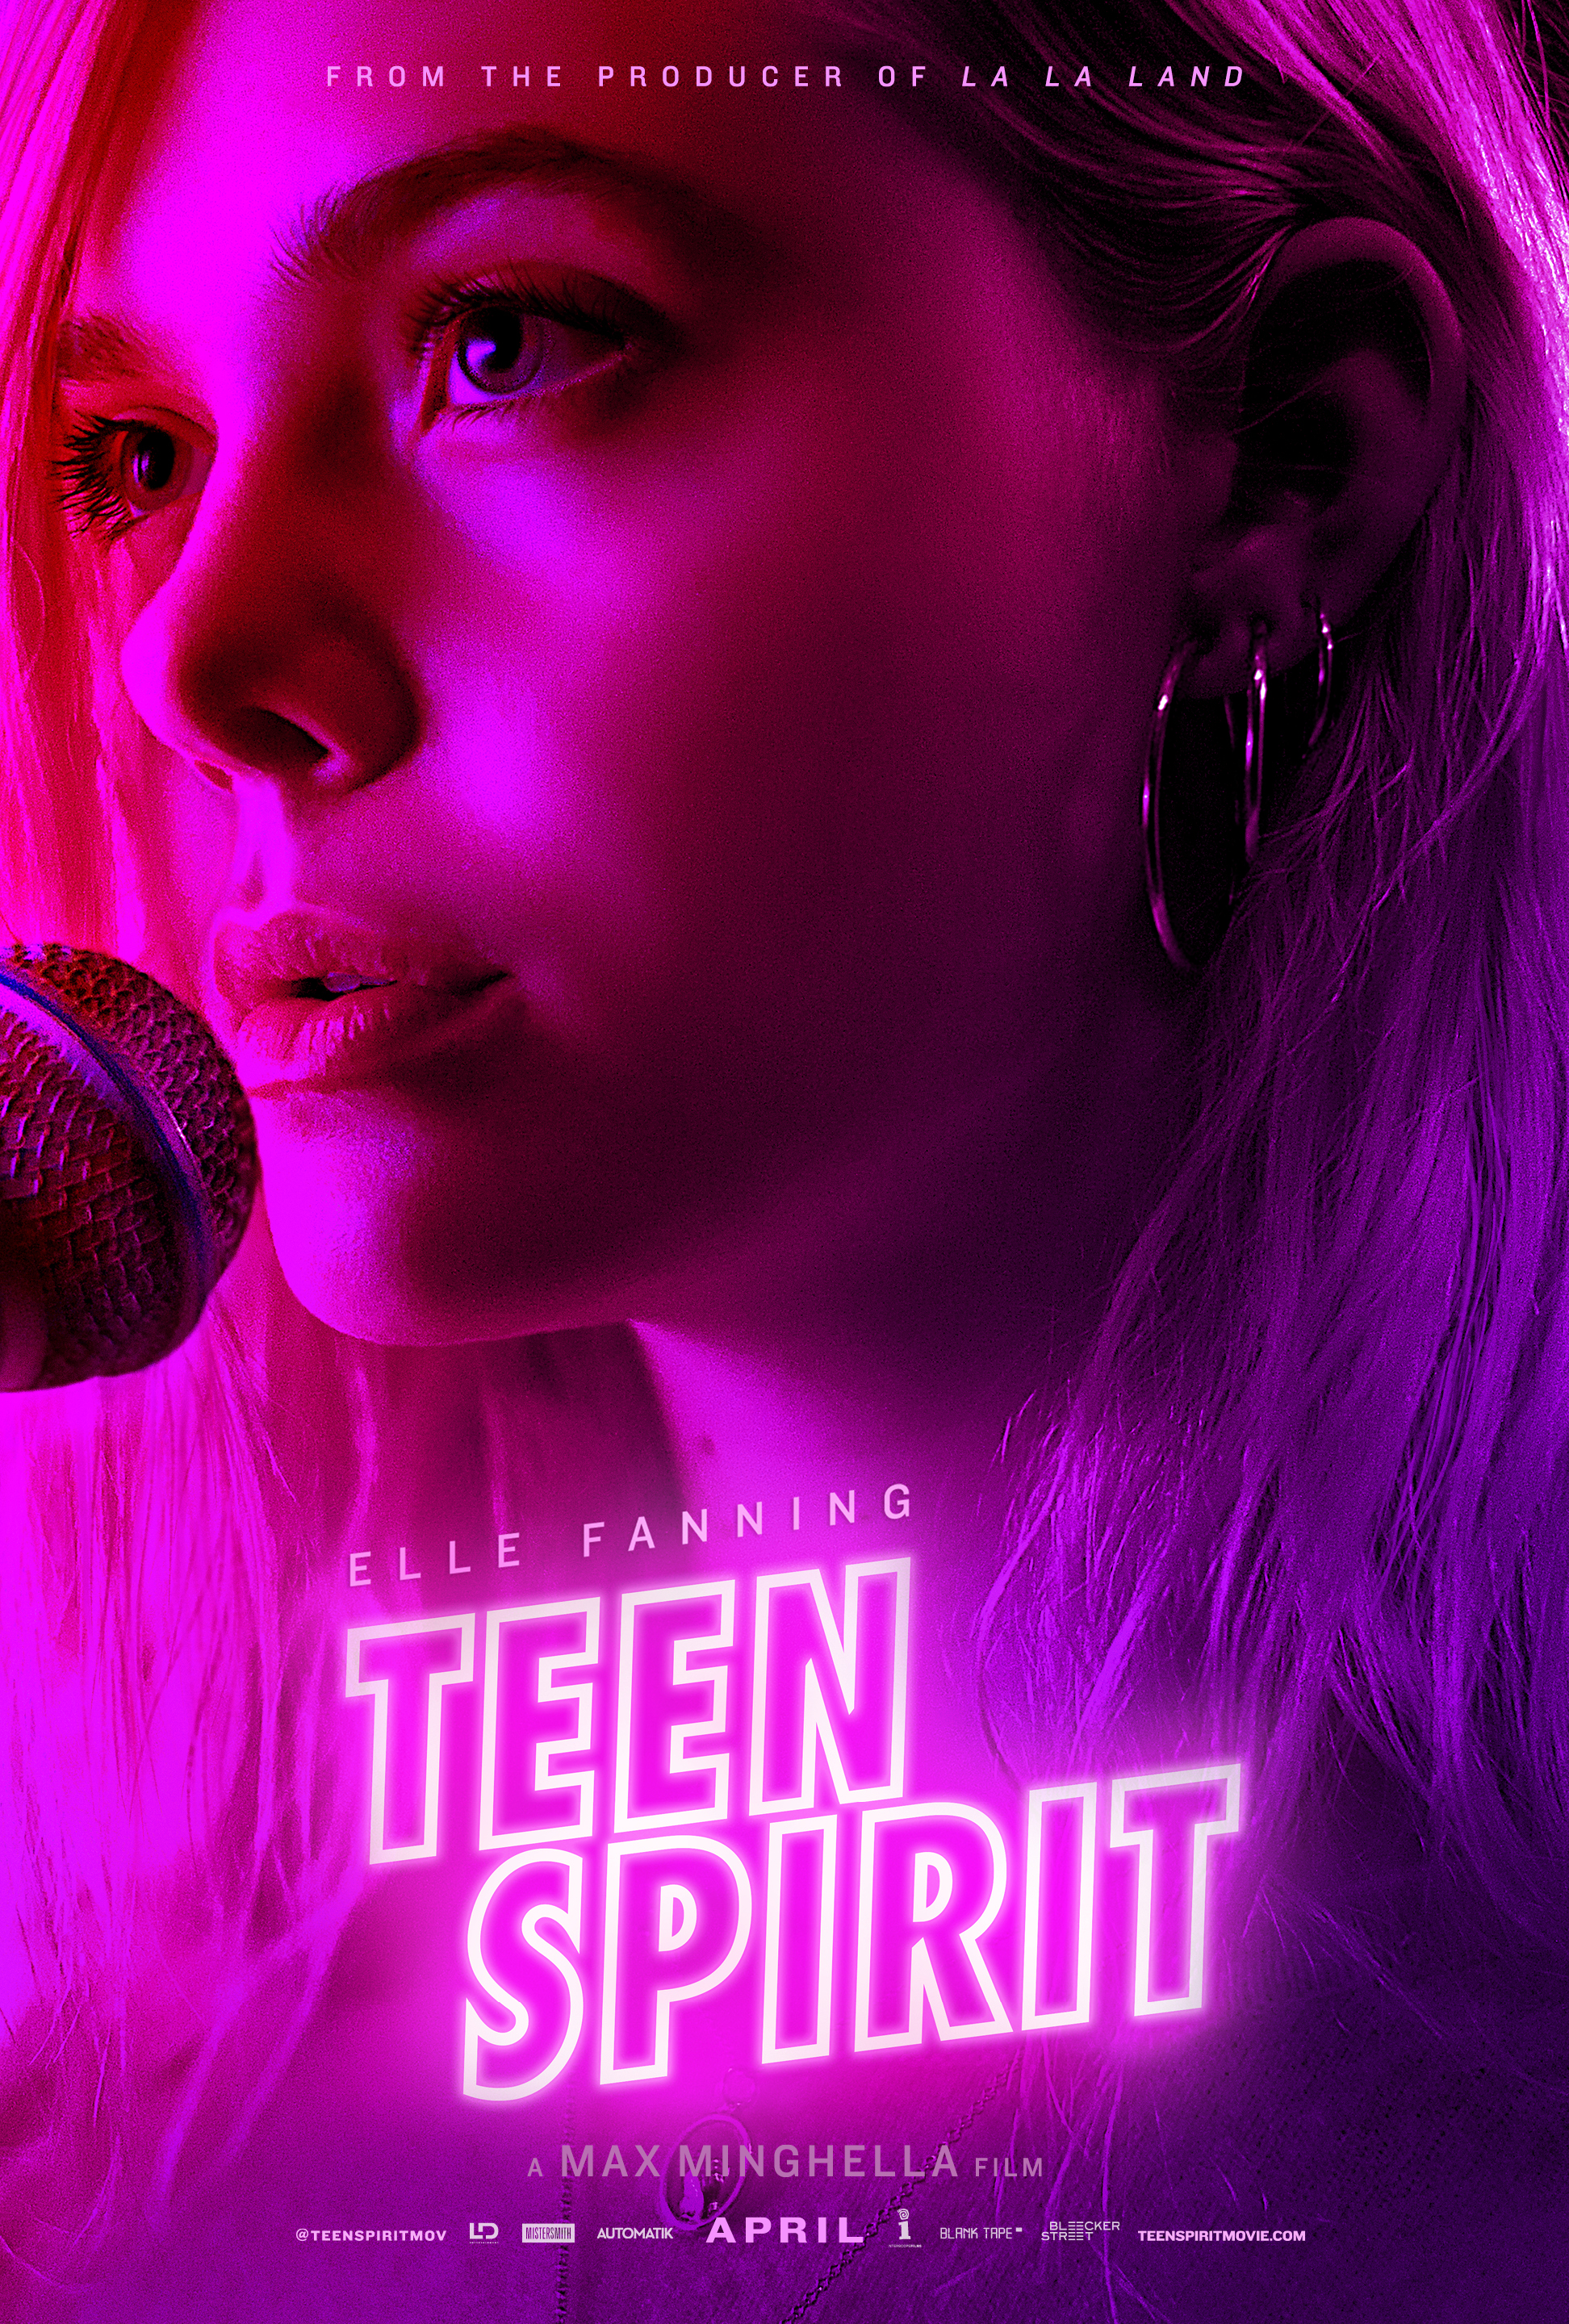 Free teen film to watch